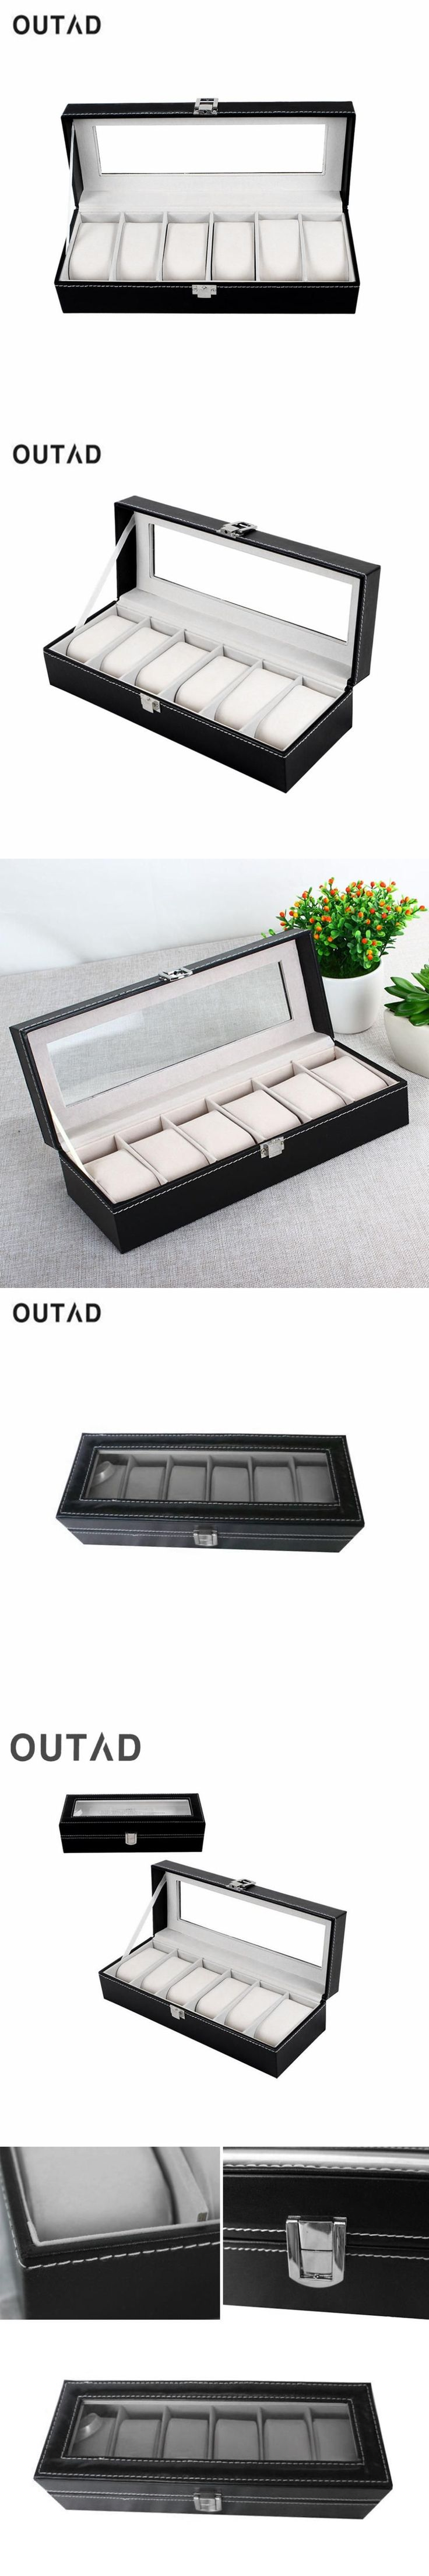 OUTAD Leather Watch Box Classic 6 Grids Luxury Refinement Slots Boxes Gift Case Jewelry Display Storage Holder Winder Organizer #luxuryjewelrydisplay